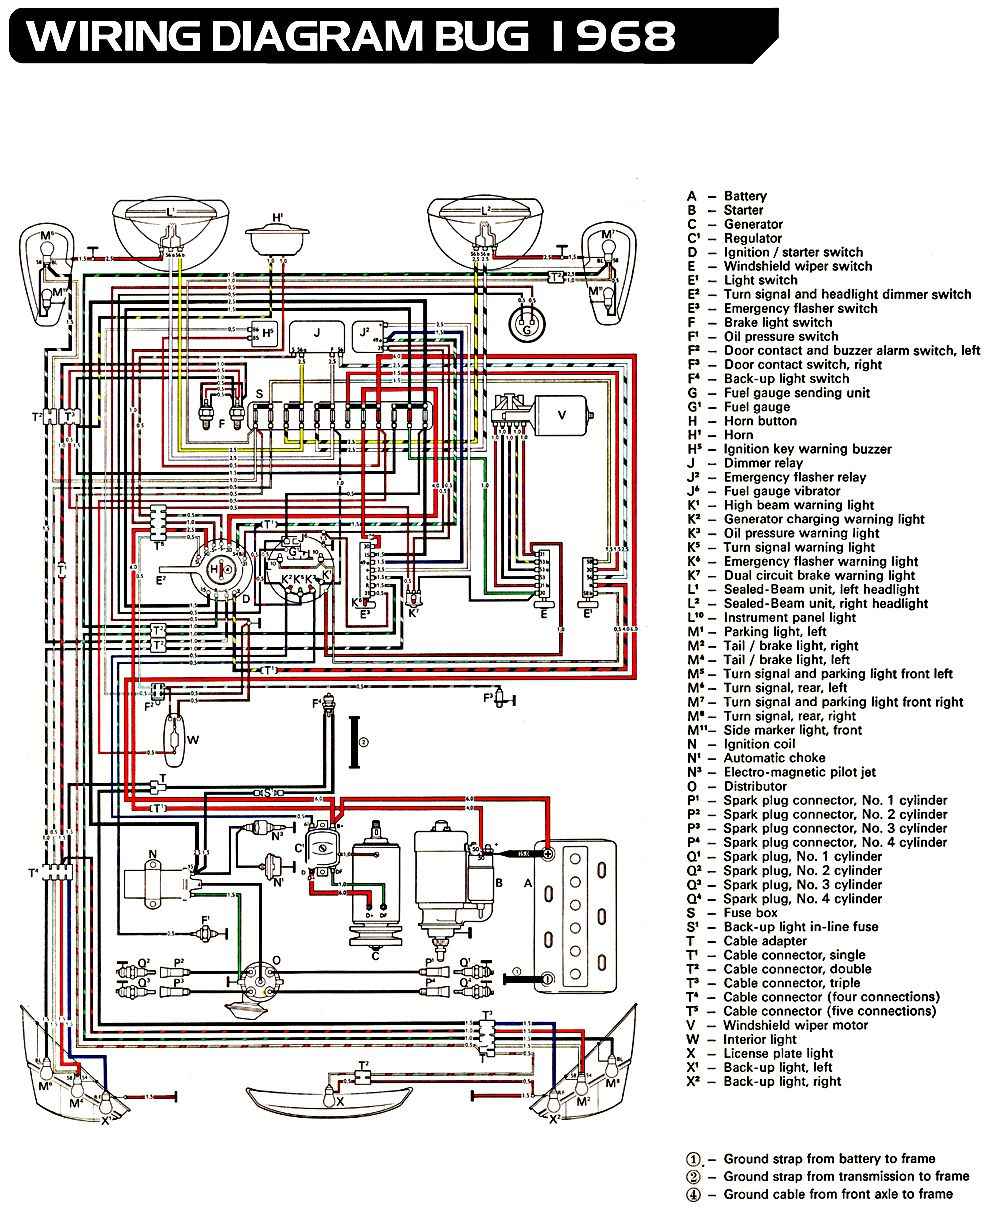 1963 vw wiring diagram wiring library 1999 VW Beetle Wiring Schematic 73 vw bug coil wiring diagram just another wiring diagram blog \\u2022 1970 vw bug 1963